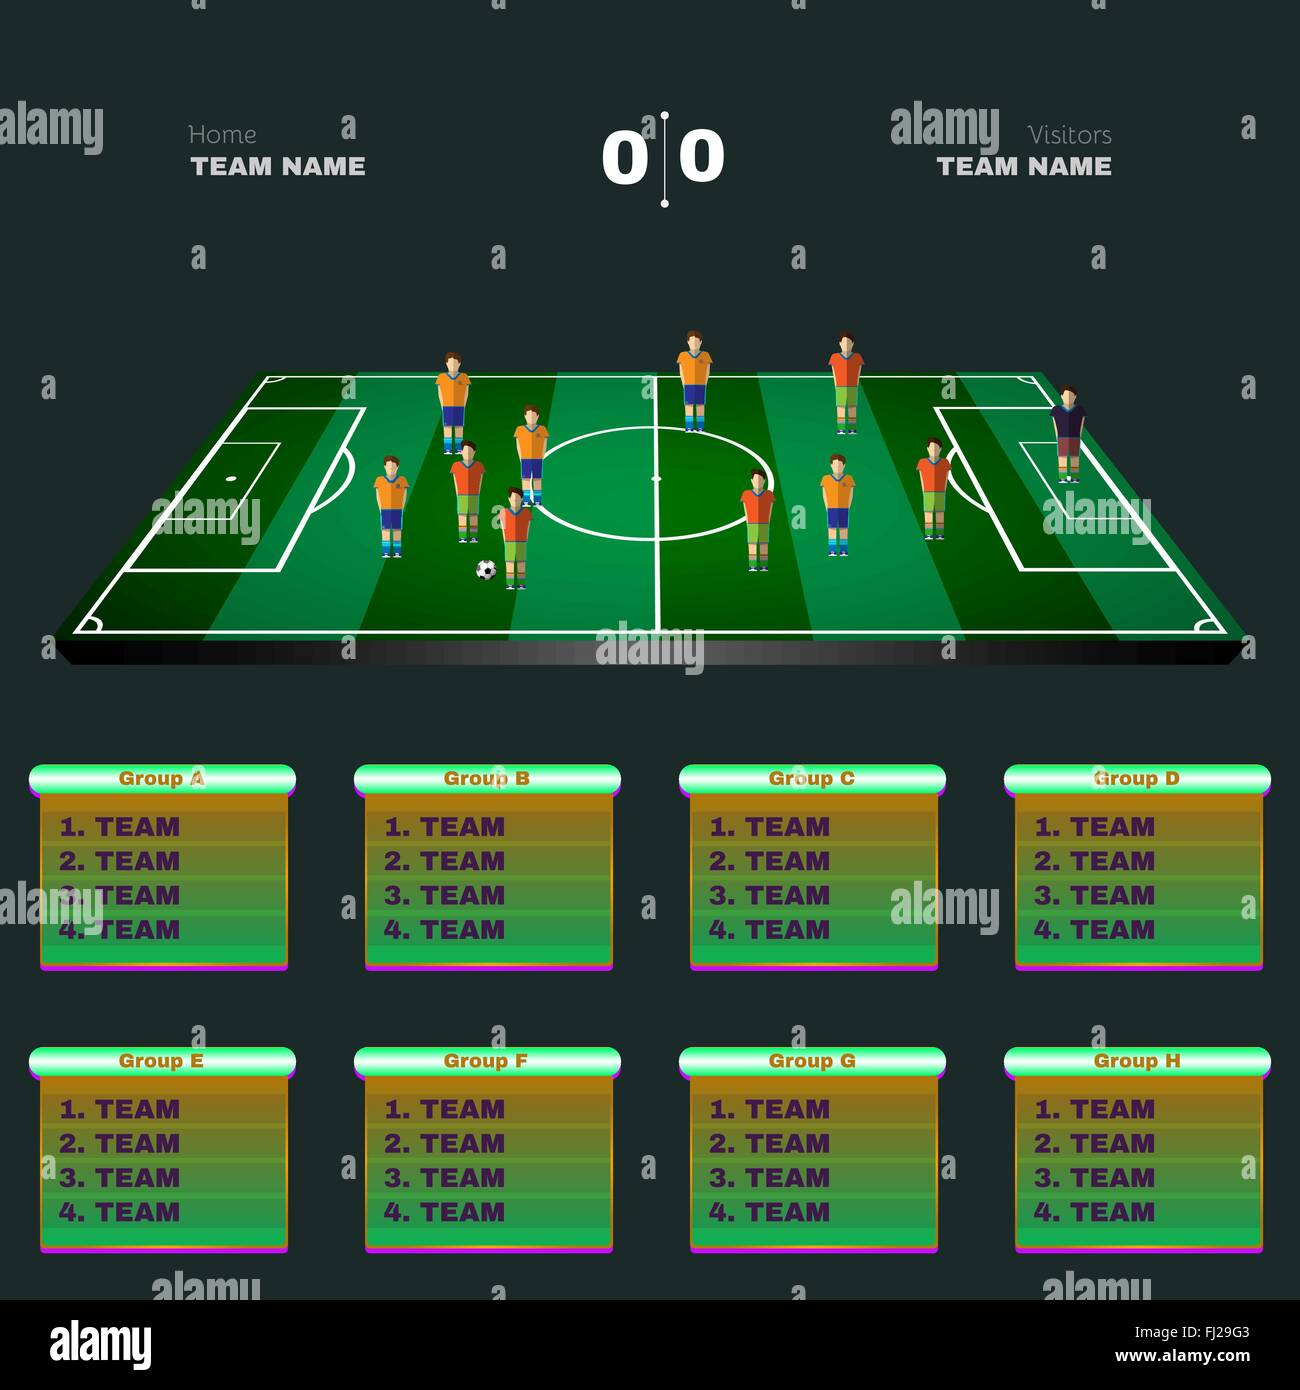 Soccer Playground Game Statistics  Sports Groups and Teams